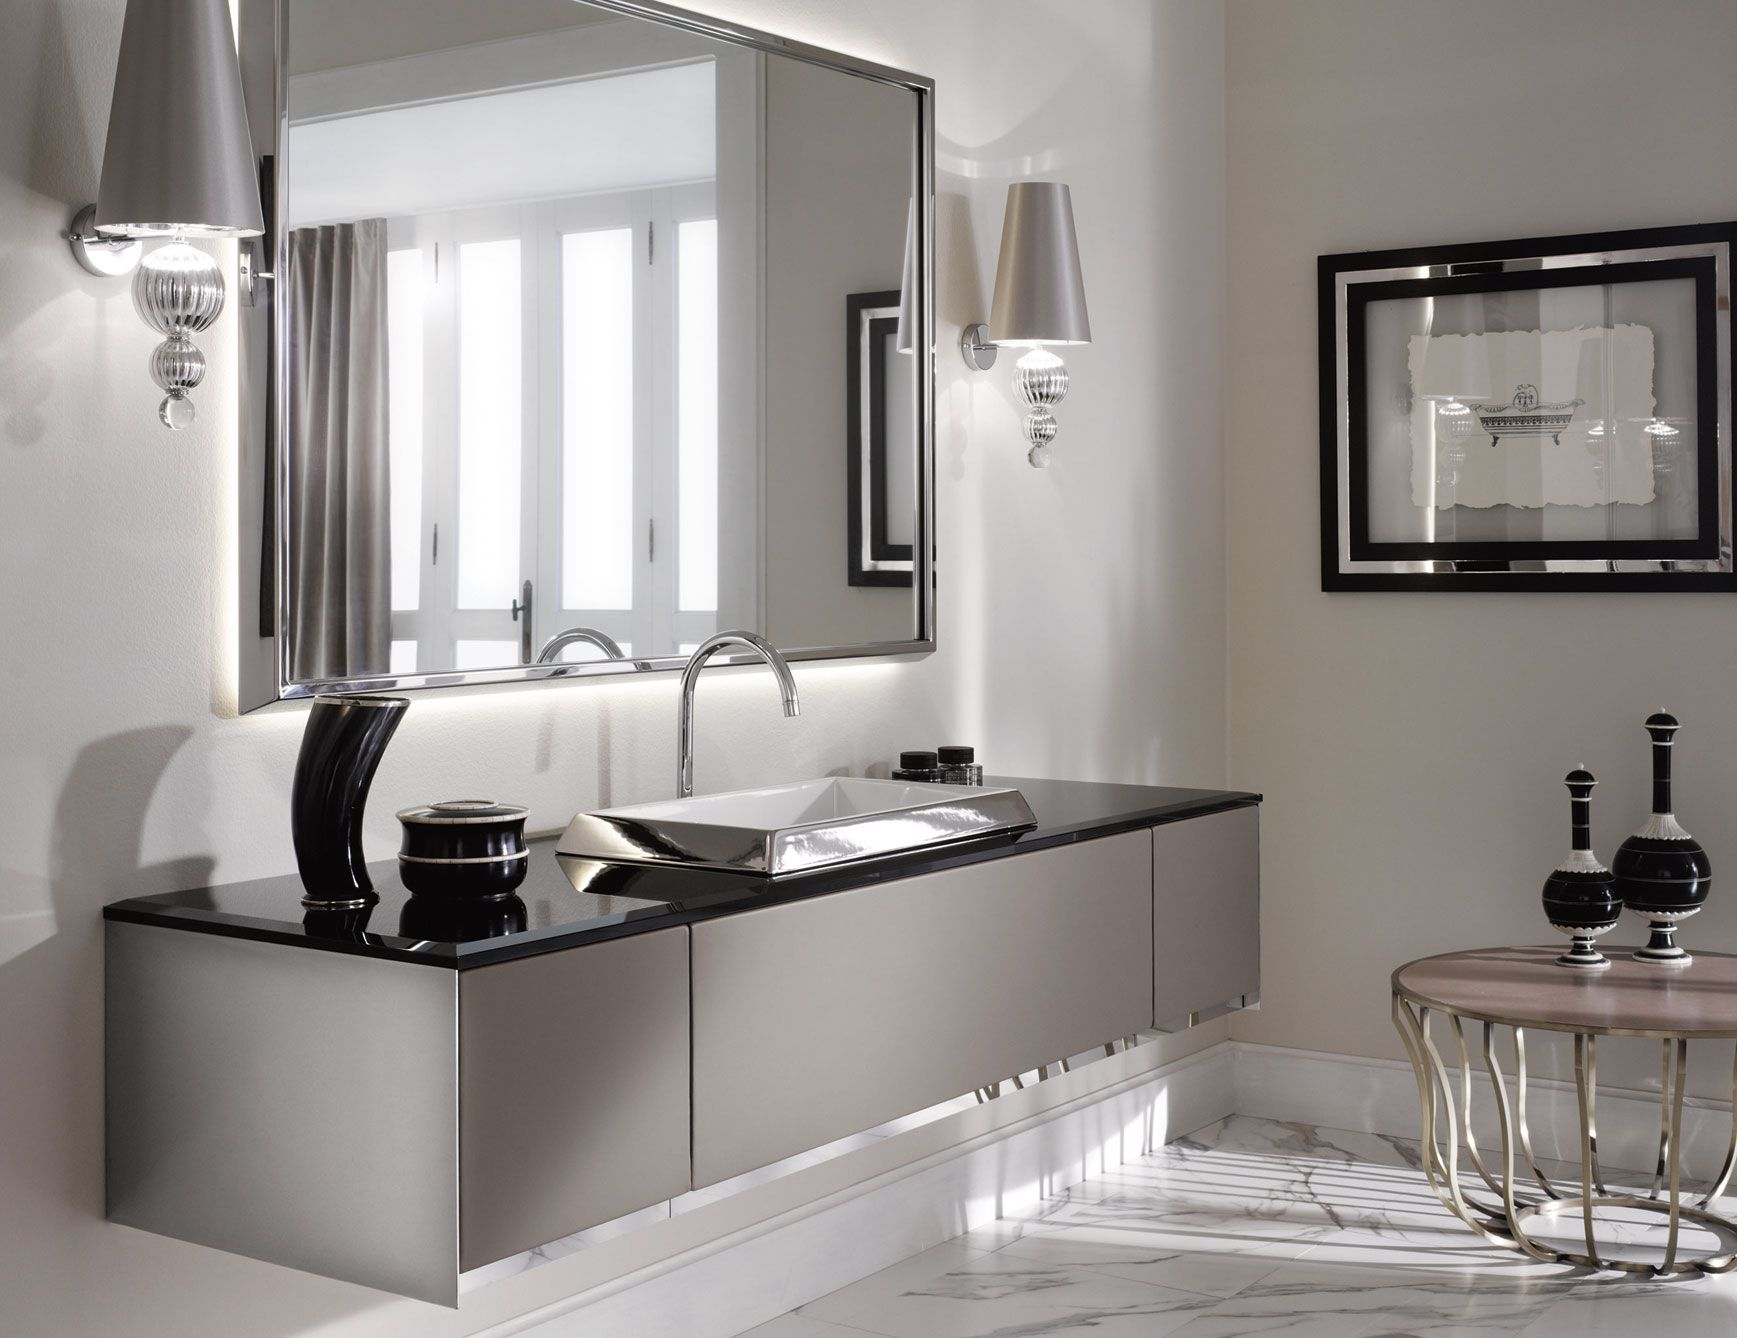 Luxury Bathroom Vanity From Nella Trevina Decoist